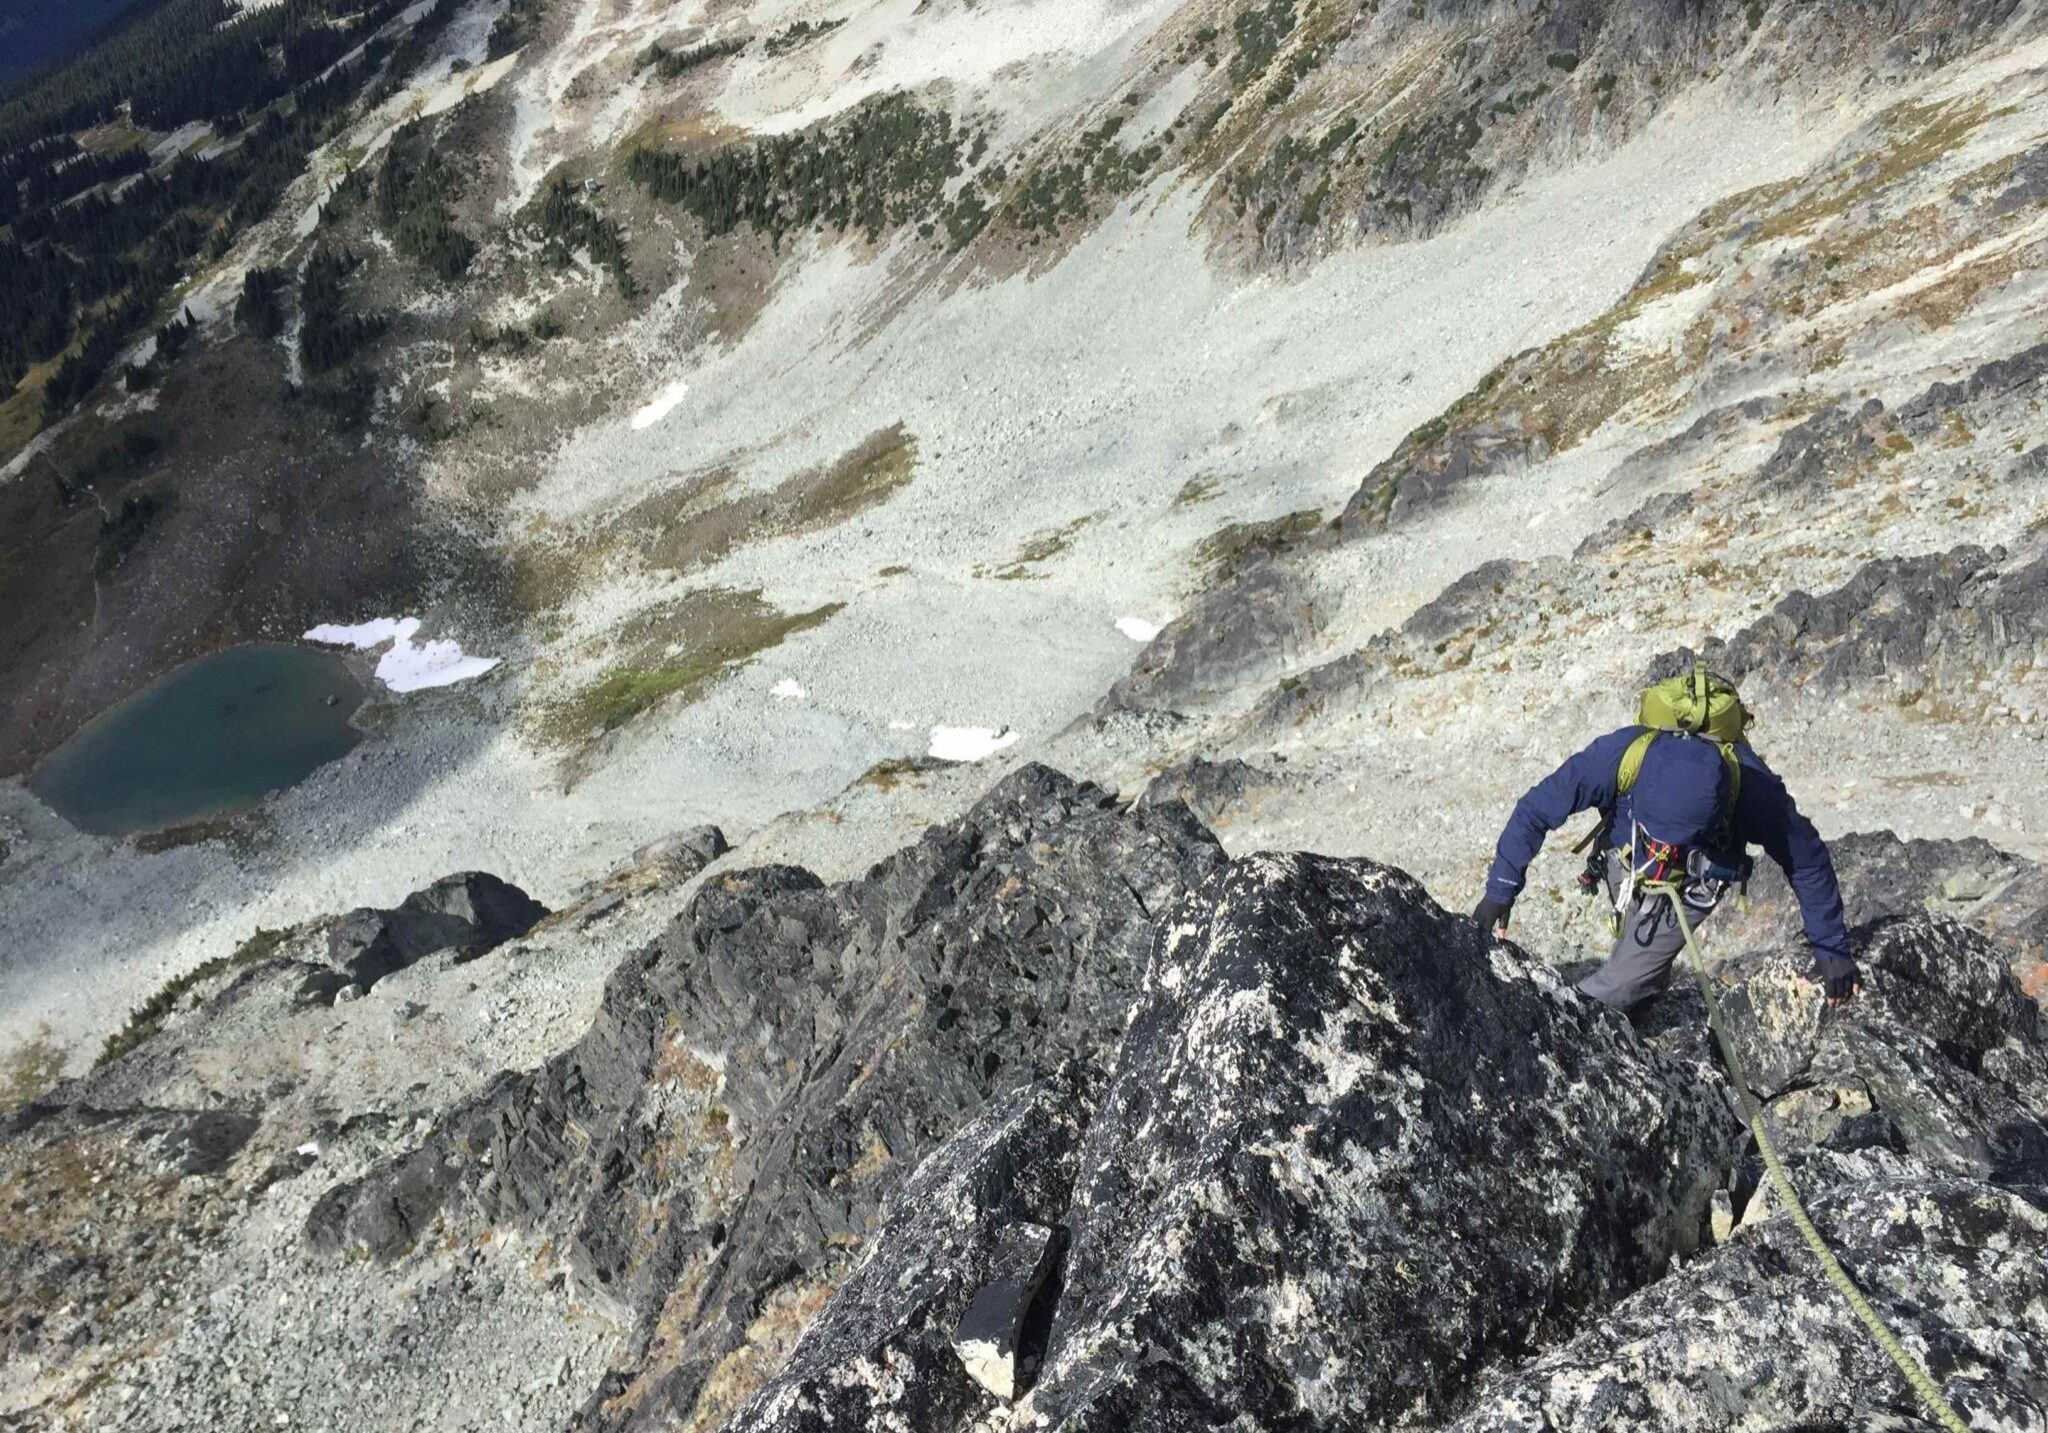 Blackcomb buttress - whistler mountaineering 3